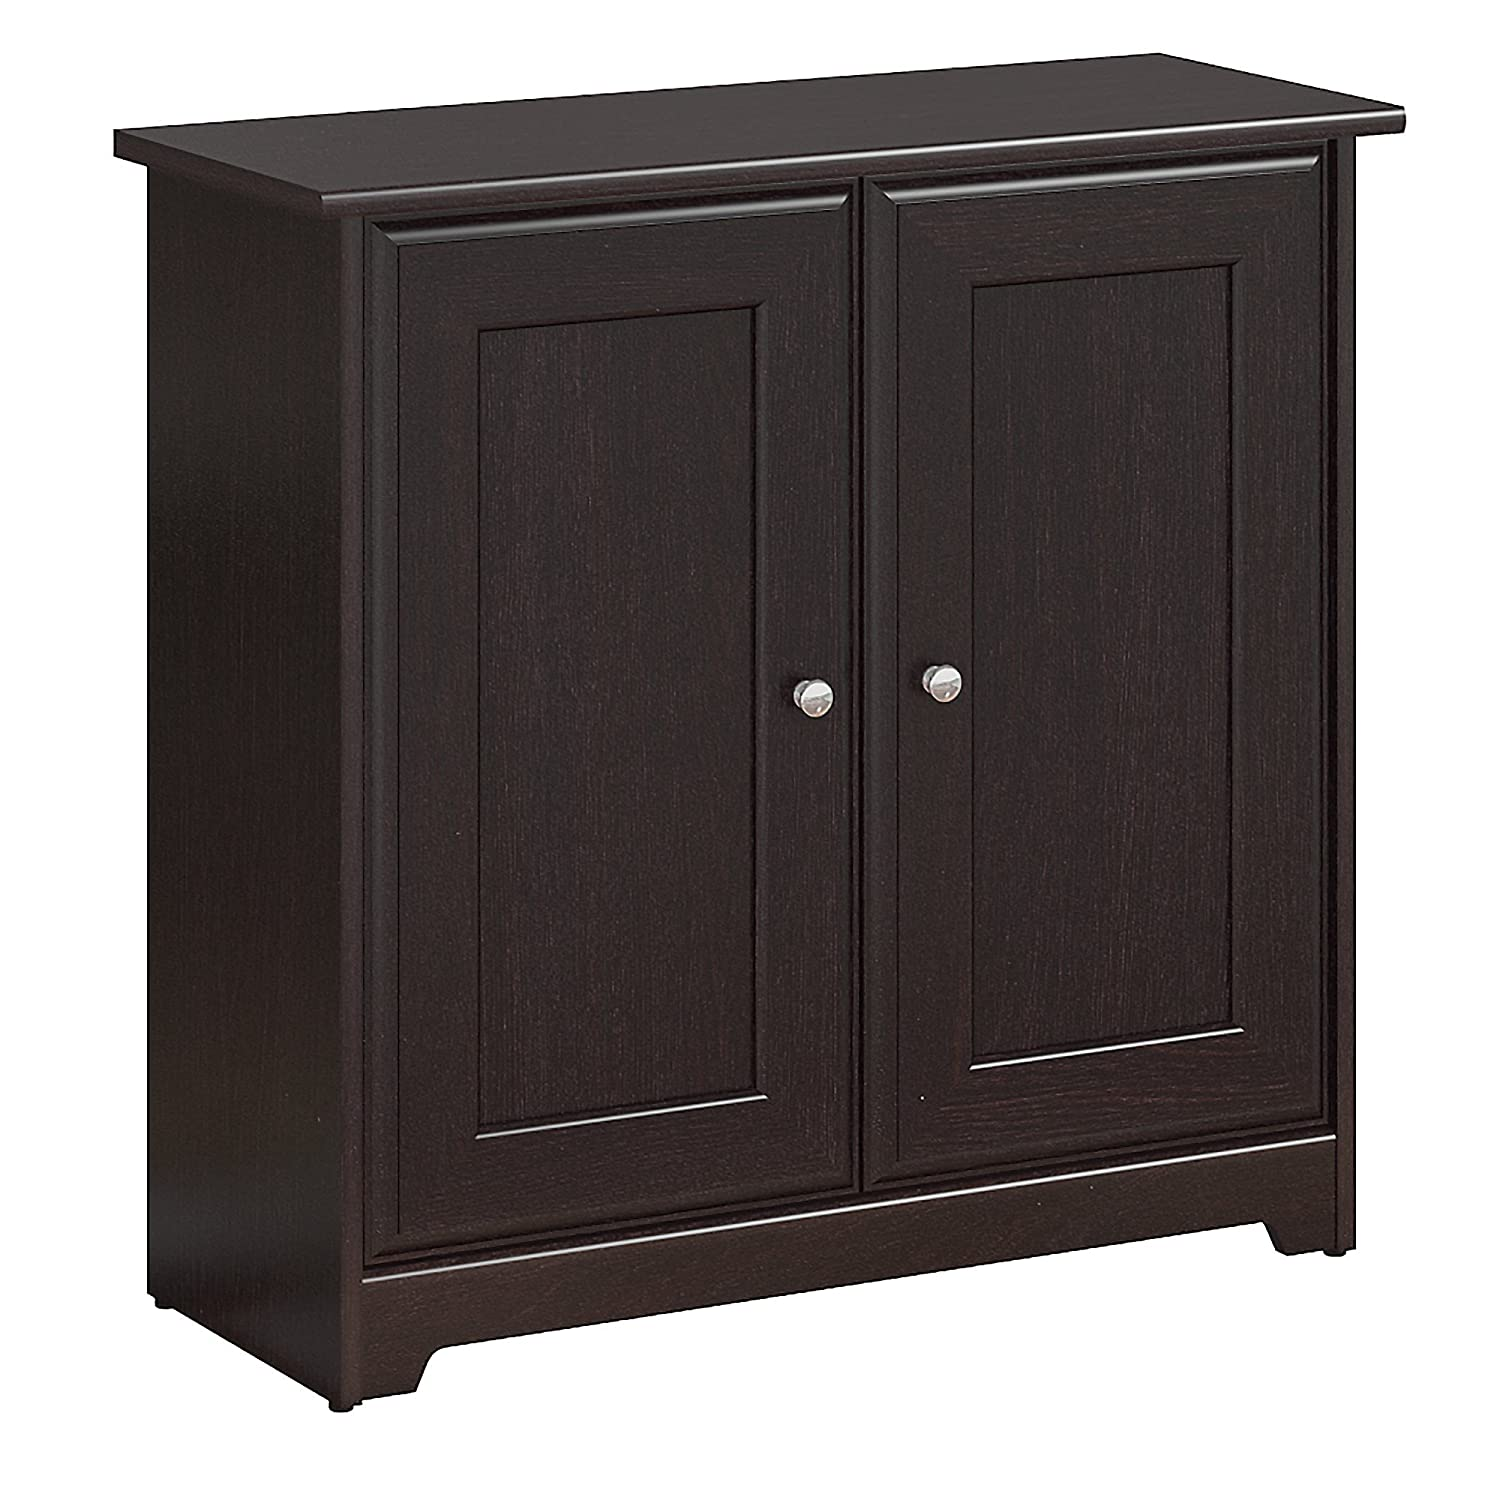 Cabot Small Storage Cabinet with Doors in Espresso Oak